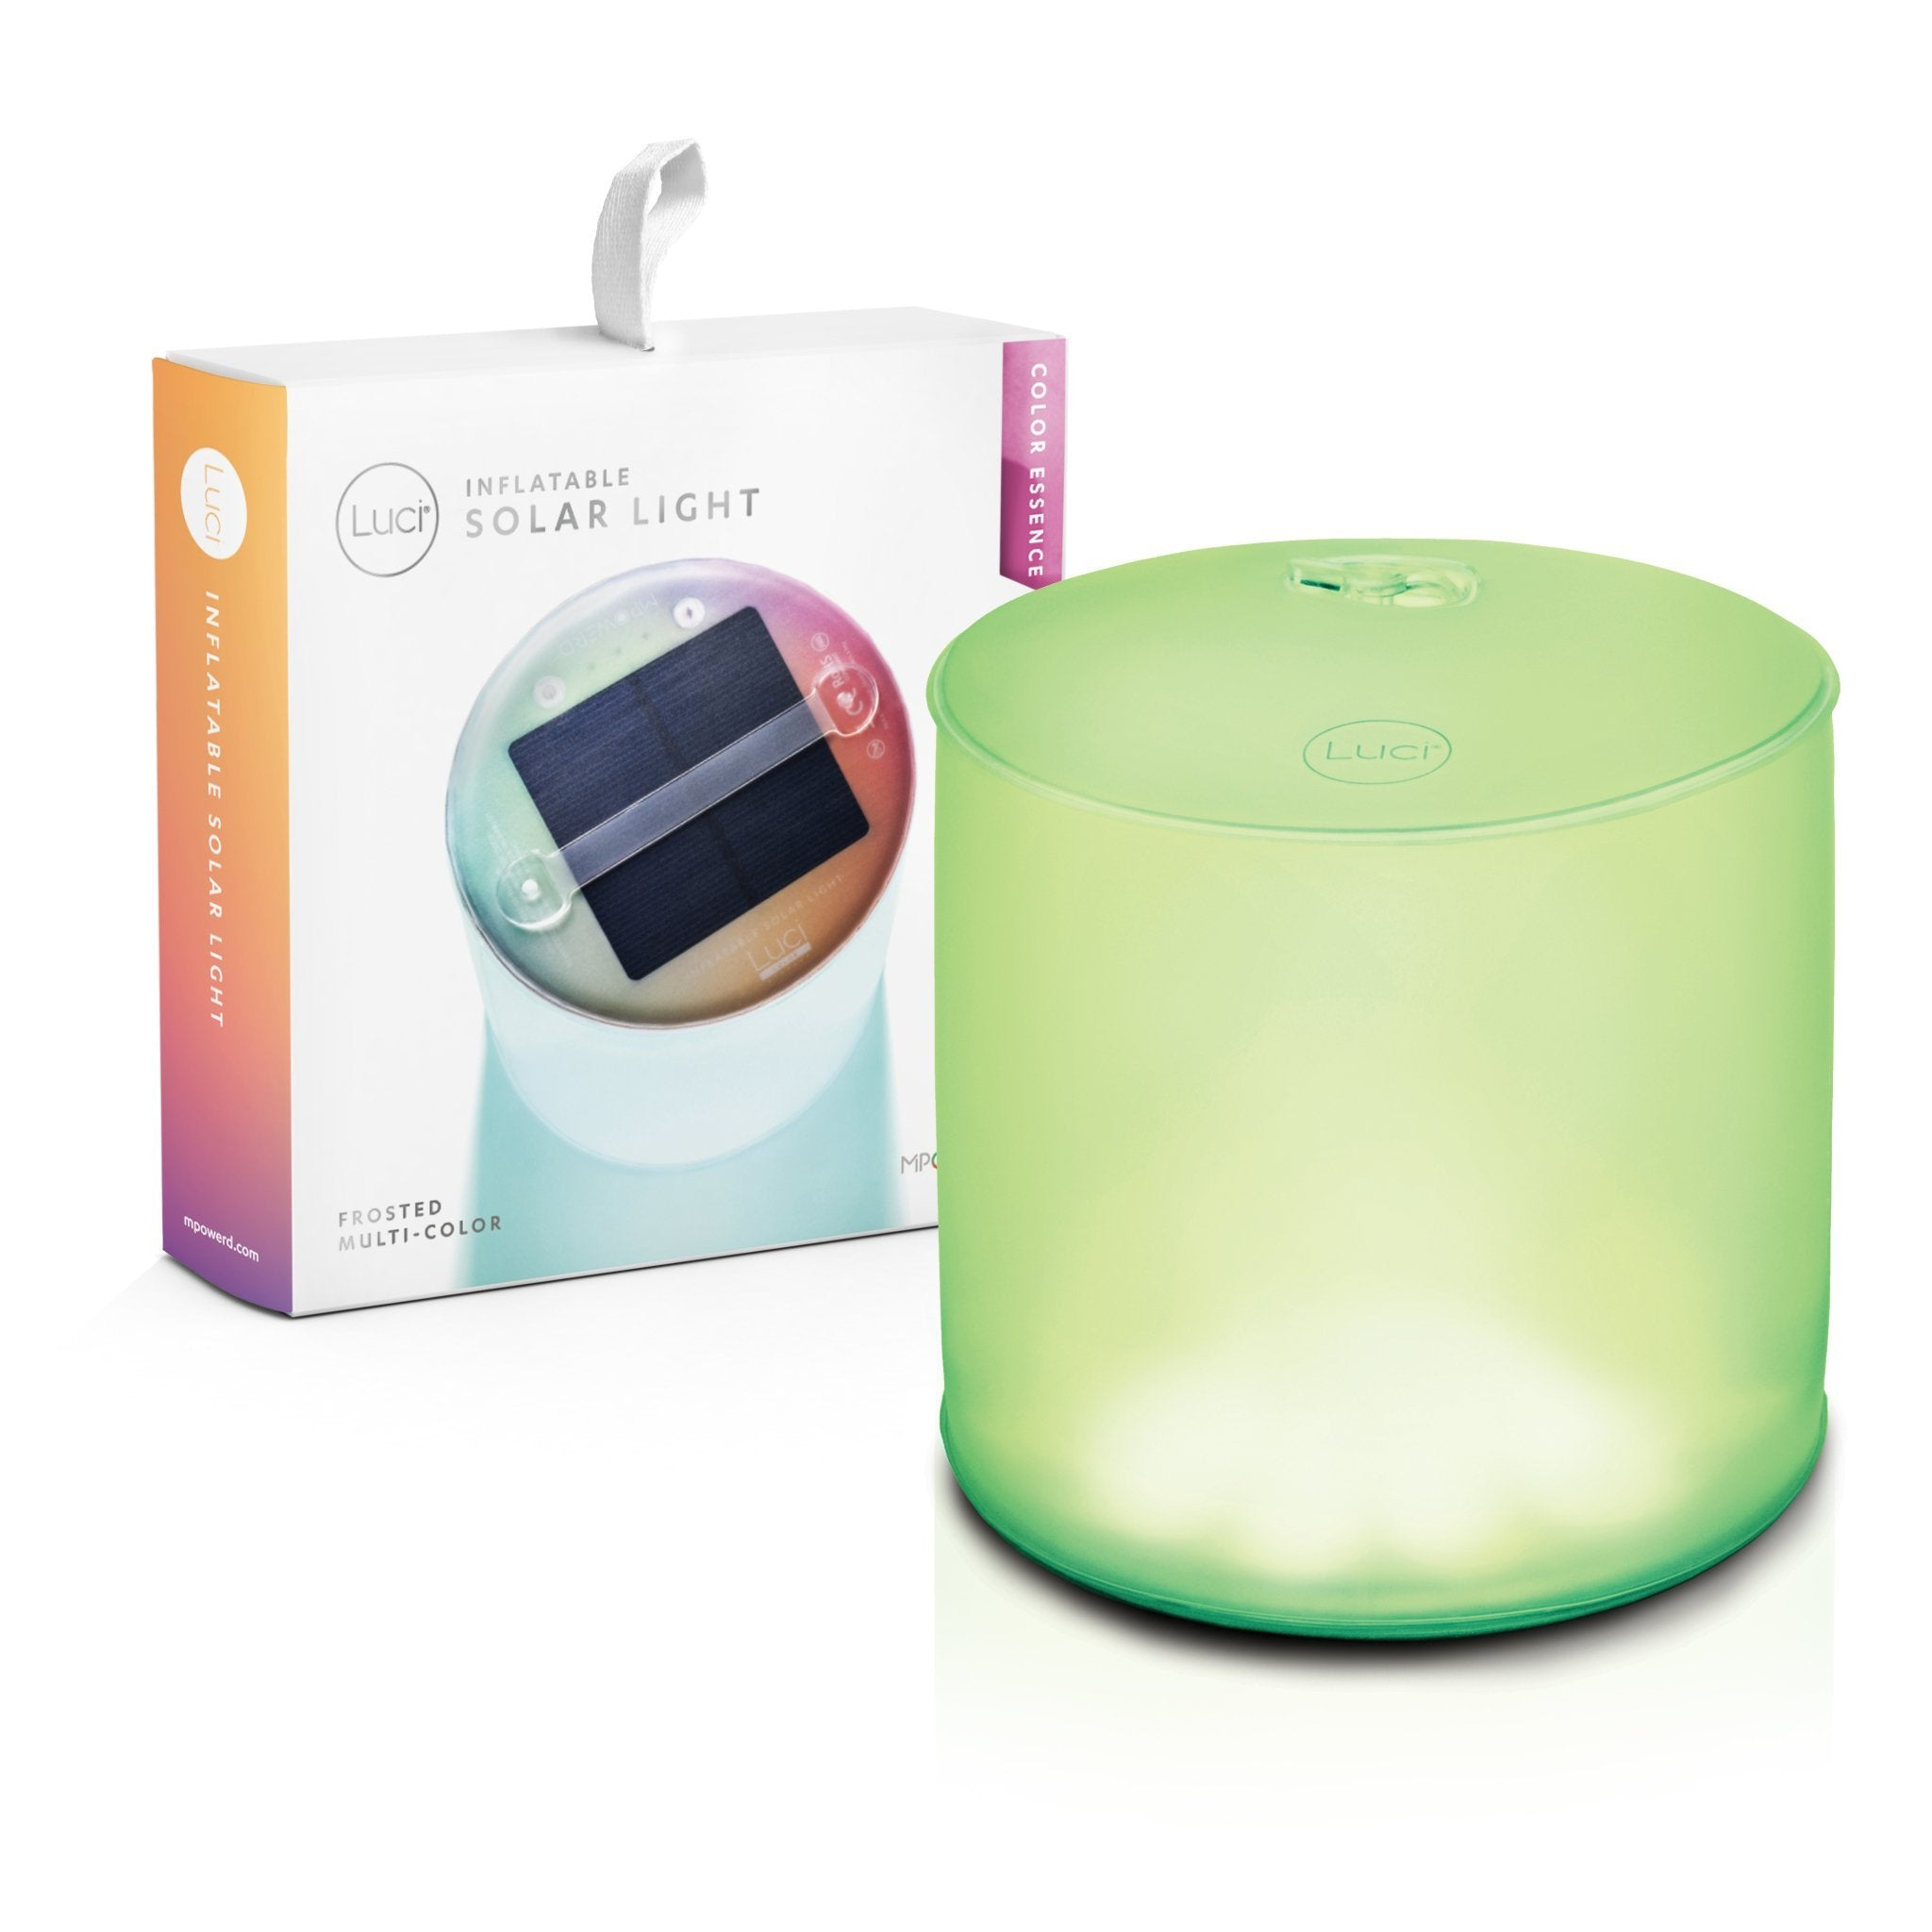 Luci Cool Gadgets Luci Essence Inflatable Solar Light